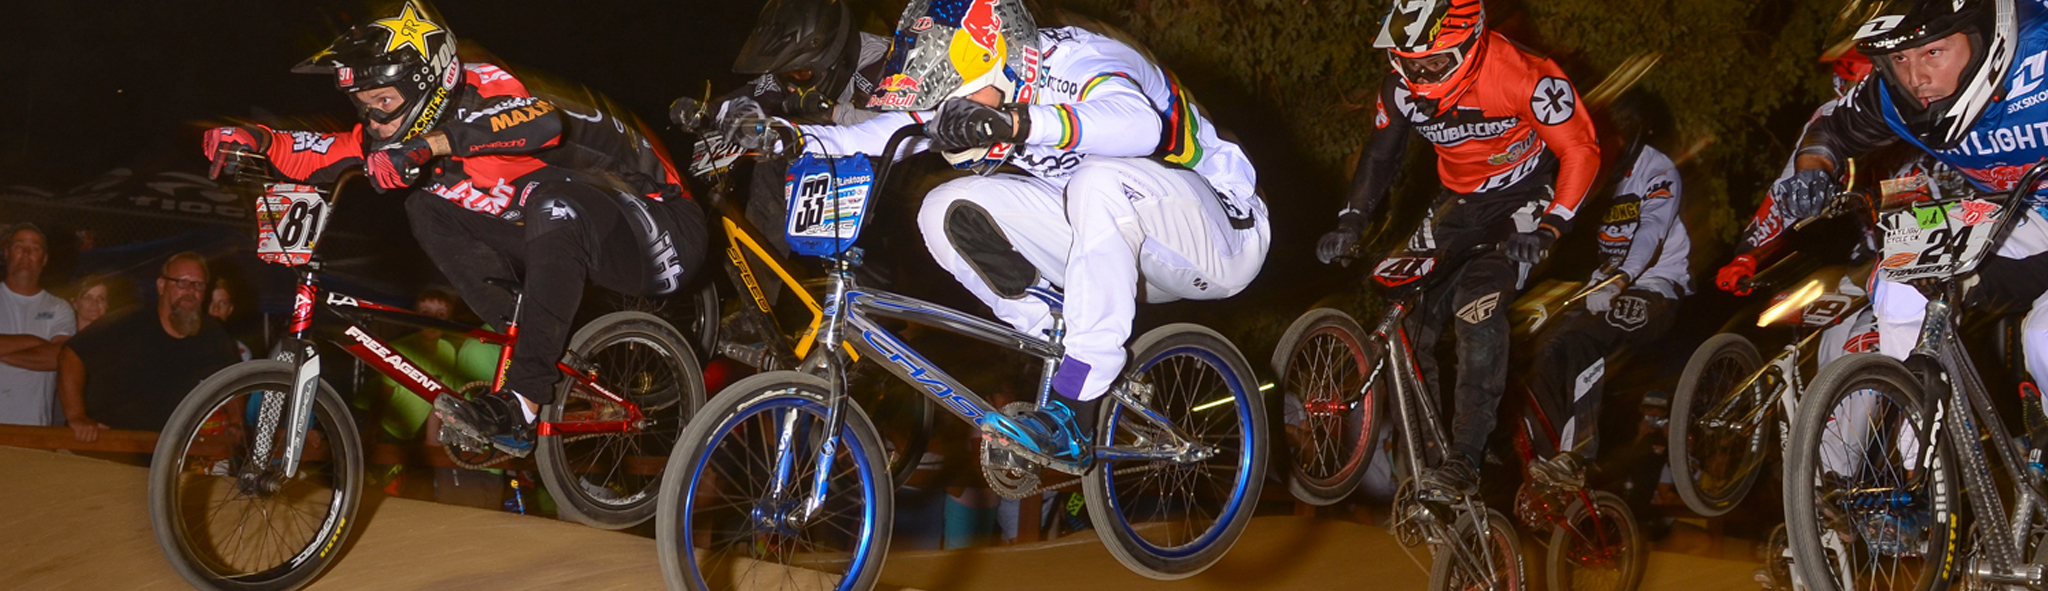 Joris Daudet takes the win and is on the podium both days at USA BMX Fall Nationals